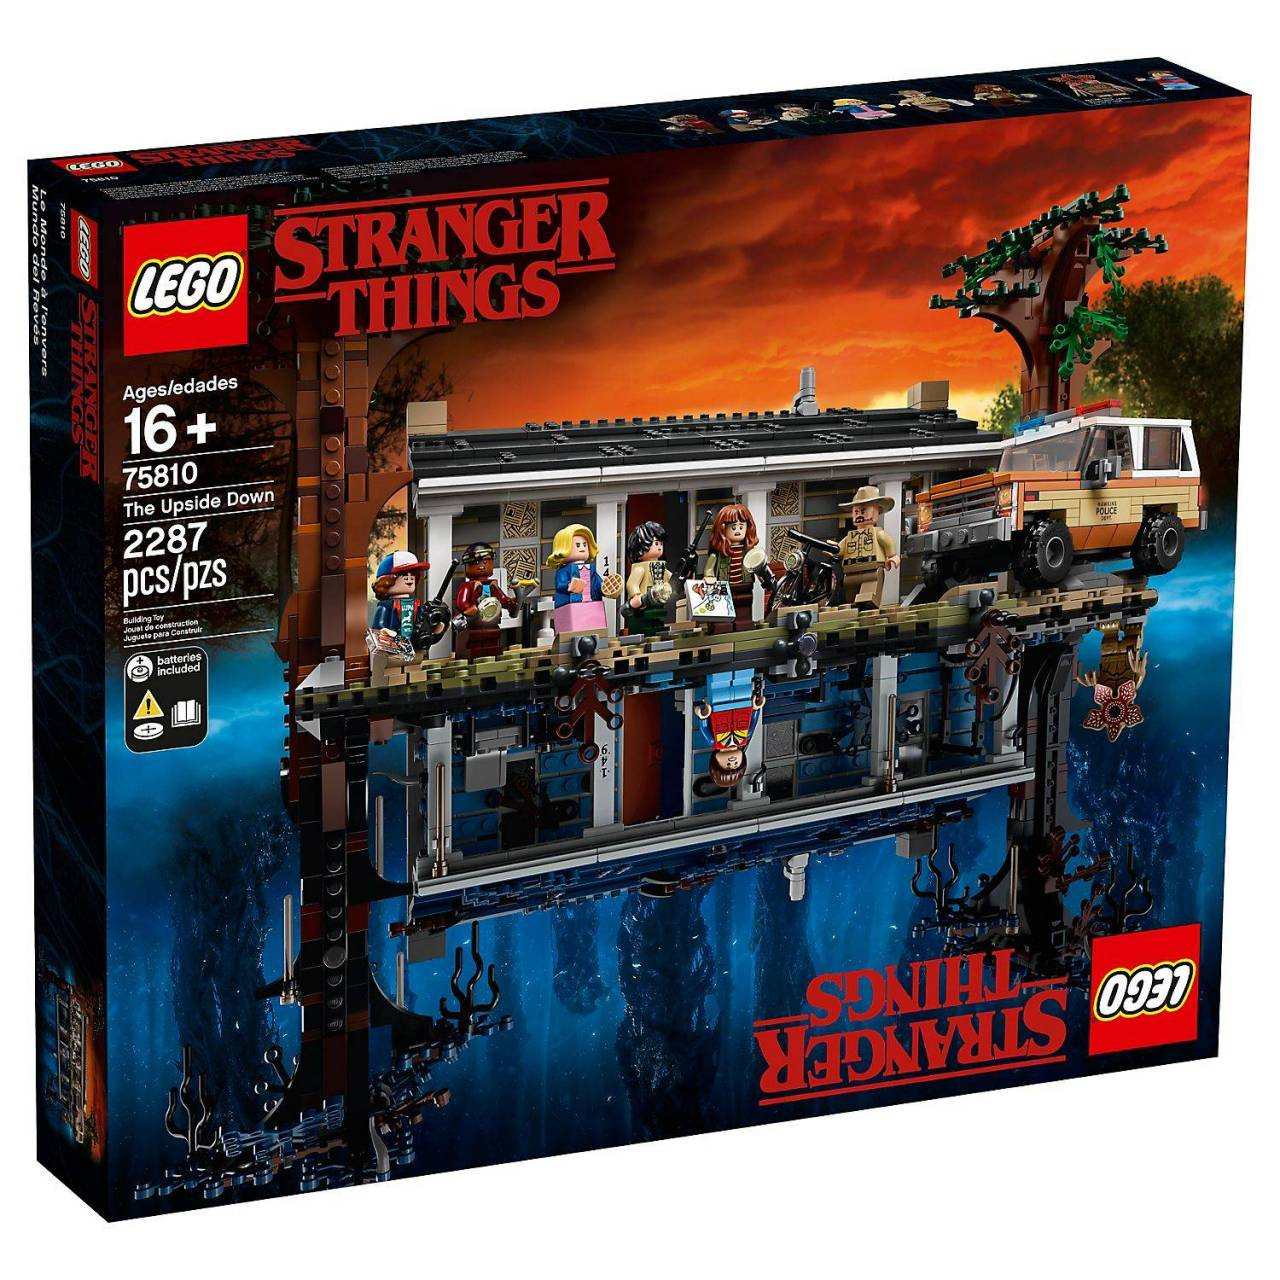 Lego Stranger Things - Complete Upside Down set